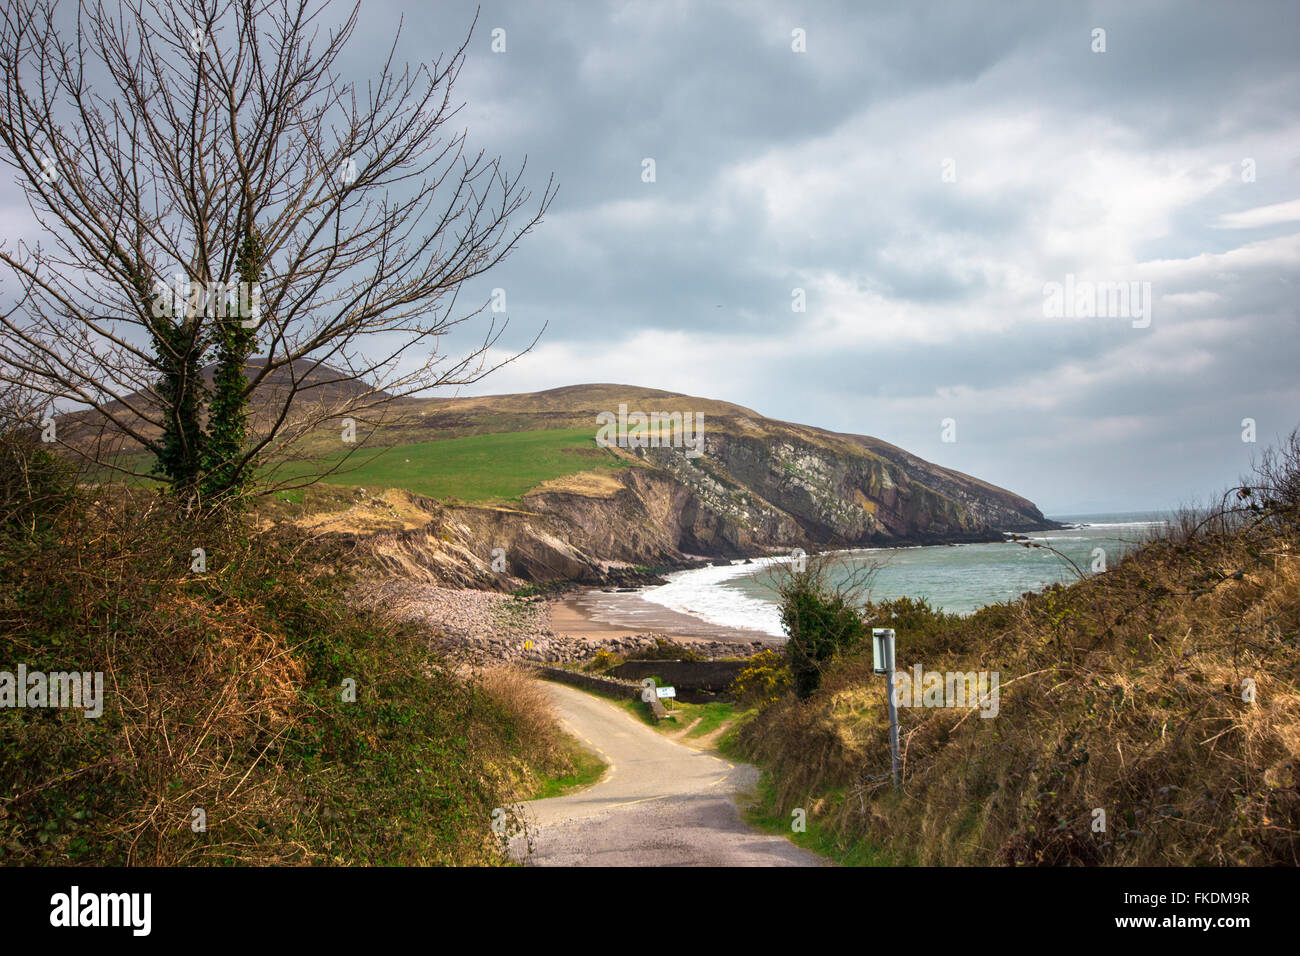 Landscape of the coast and countryside on the Dingle Peninsula in Ireland - Stock Image